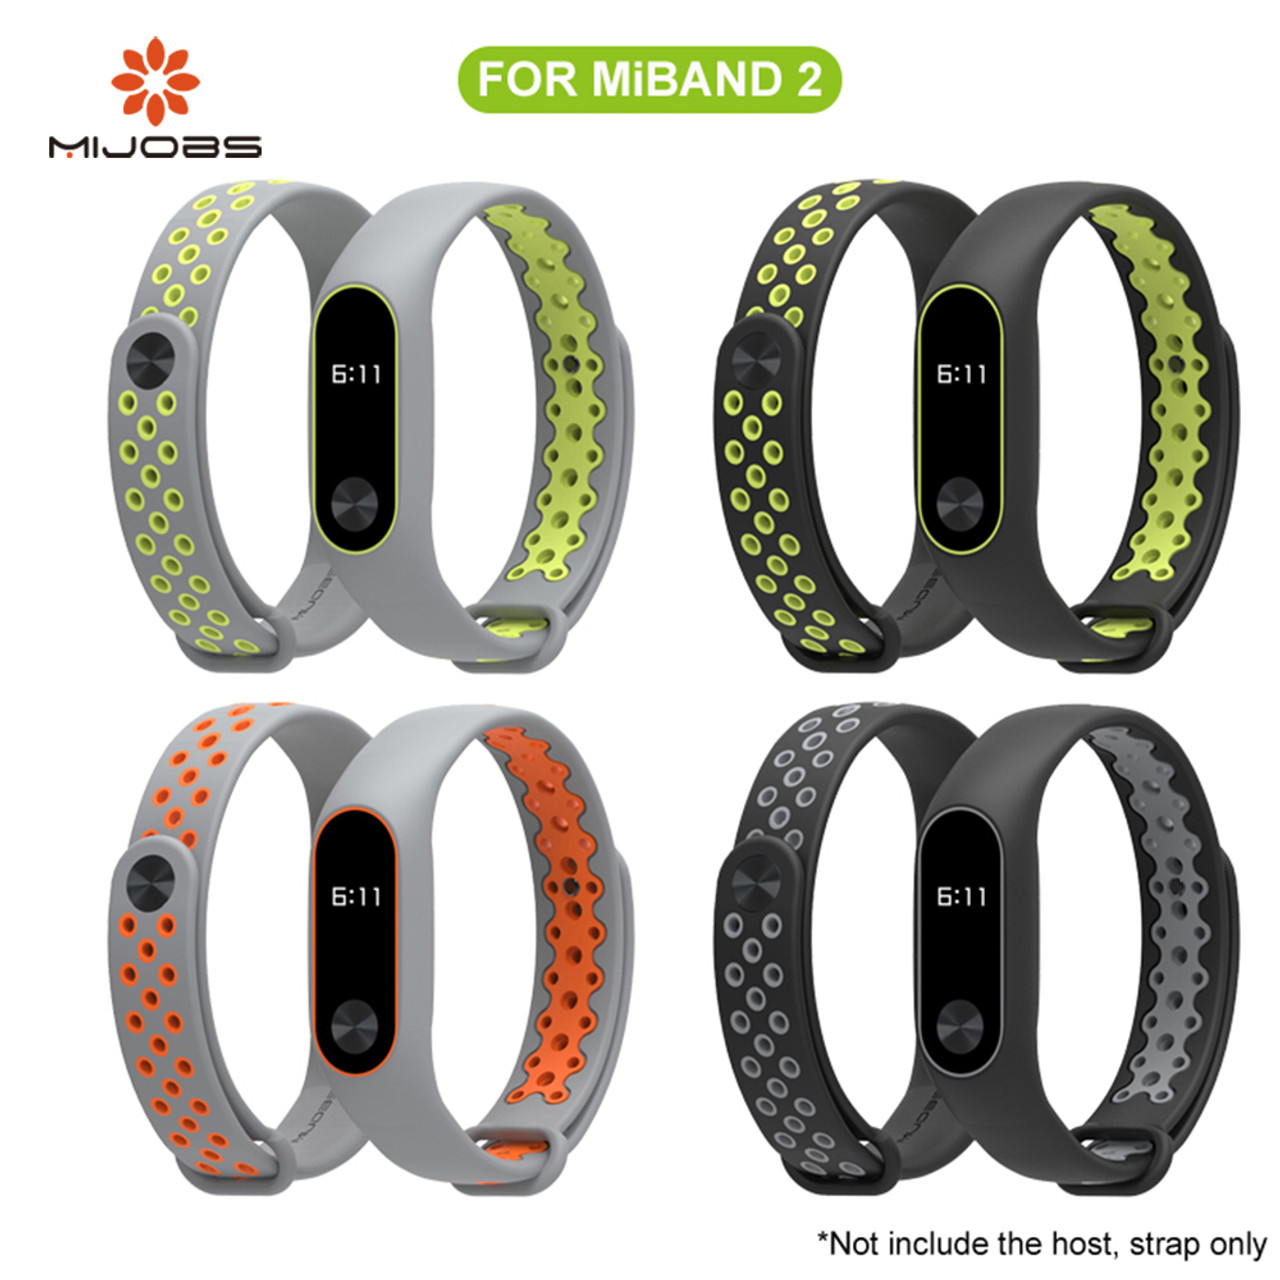 Mijobs Xiaomi Mi Band 2 Strap Sport Miband Bracelet For Oled Replacement Stainless Steel Silver